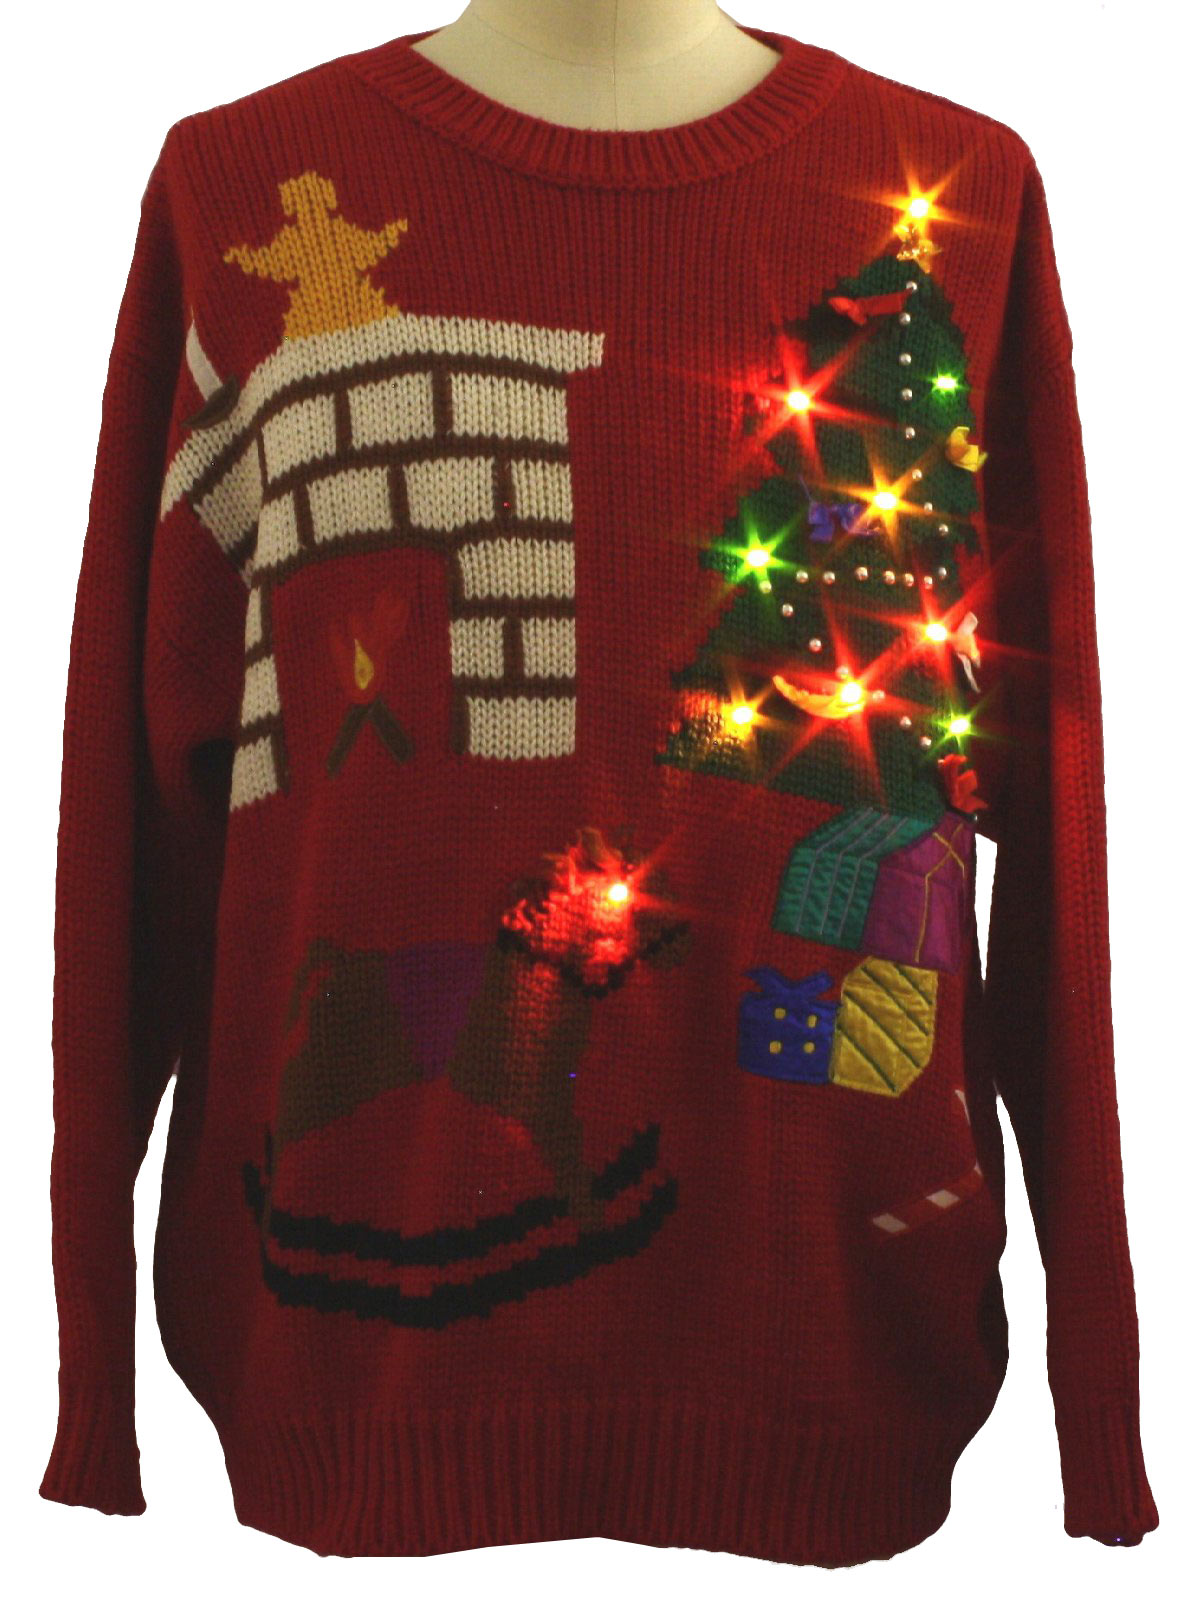 80 39 S Vintage Lightup Ugly Christmas Sweater 80s Authentic Vintage Hasting And Smith Unisex